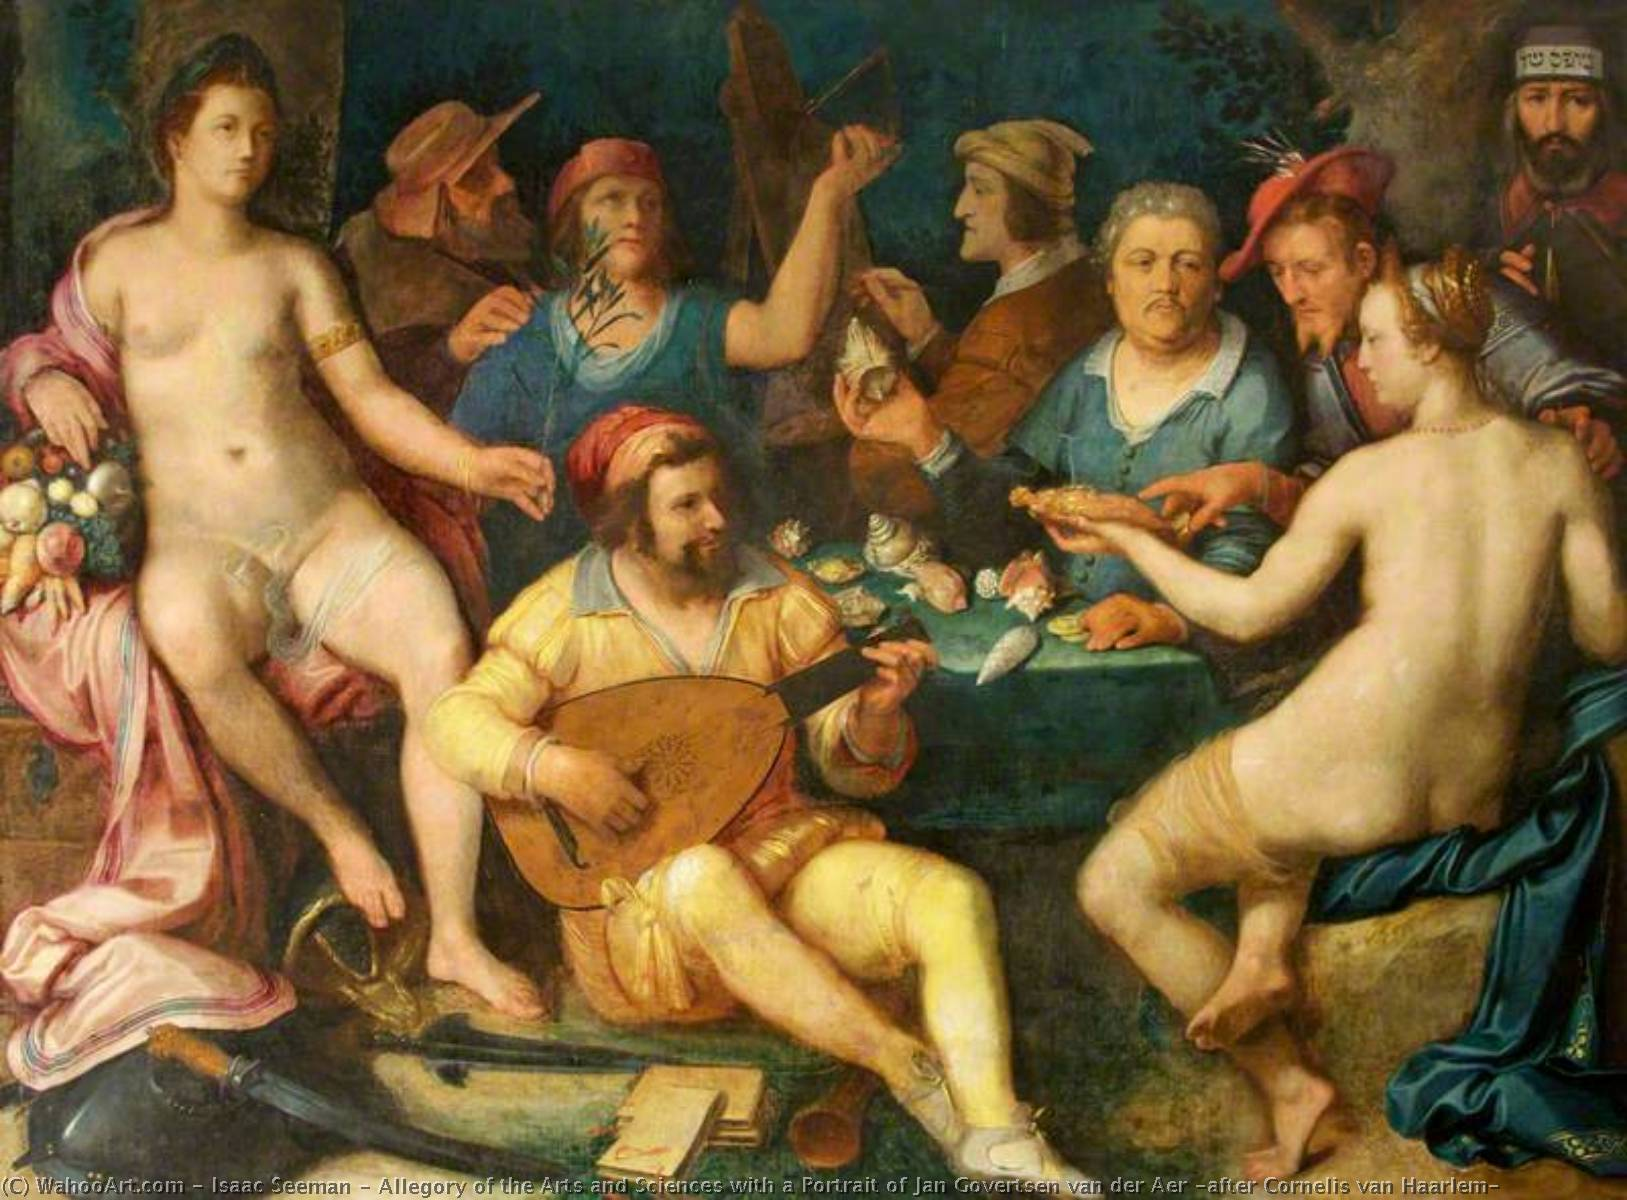 Wikioo.org - The Encyclopedia of Fine Arts - Painting, Artwork by Isaac Seeman - Allegory of the Arts and Sciences with a Portrait of Jan Govertsen van der Aer (after Cornelis van Haarlem)